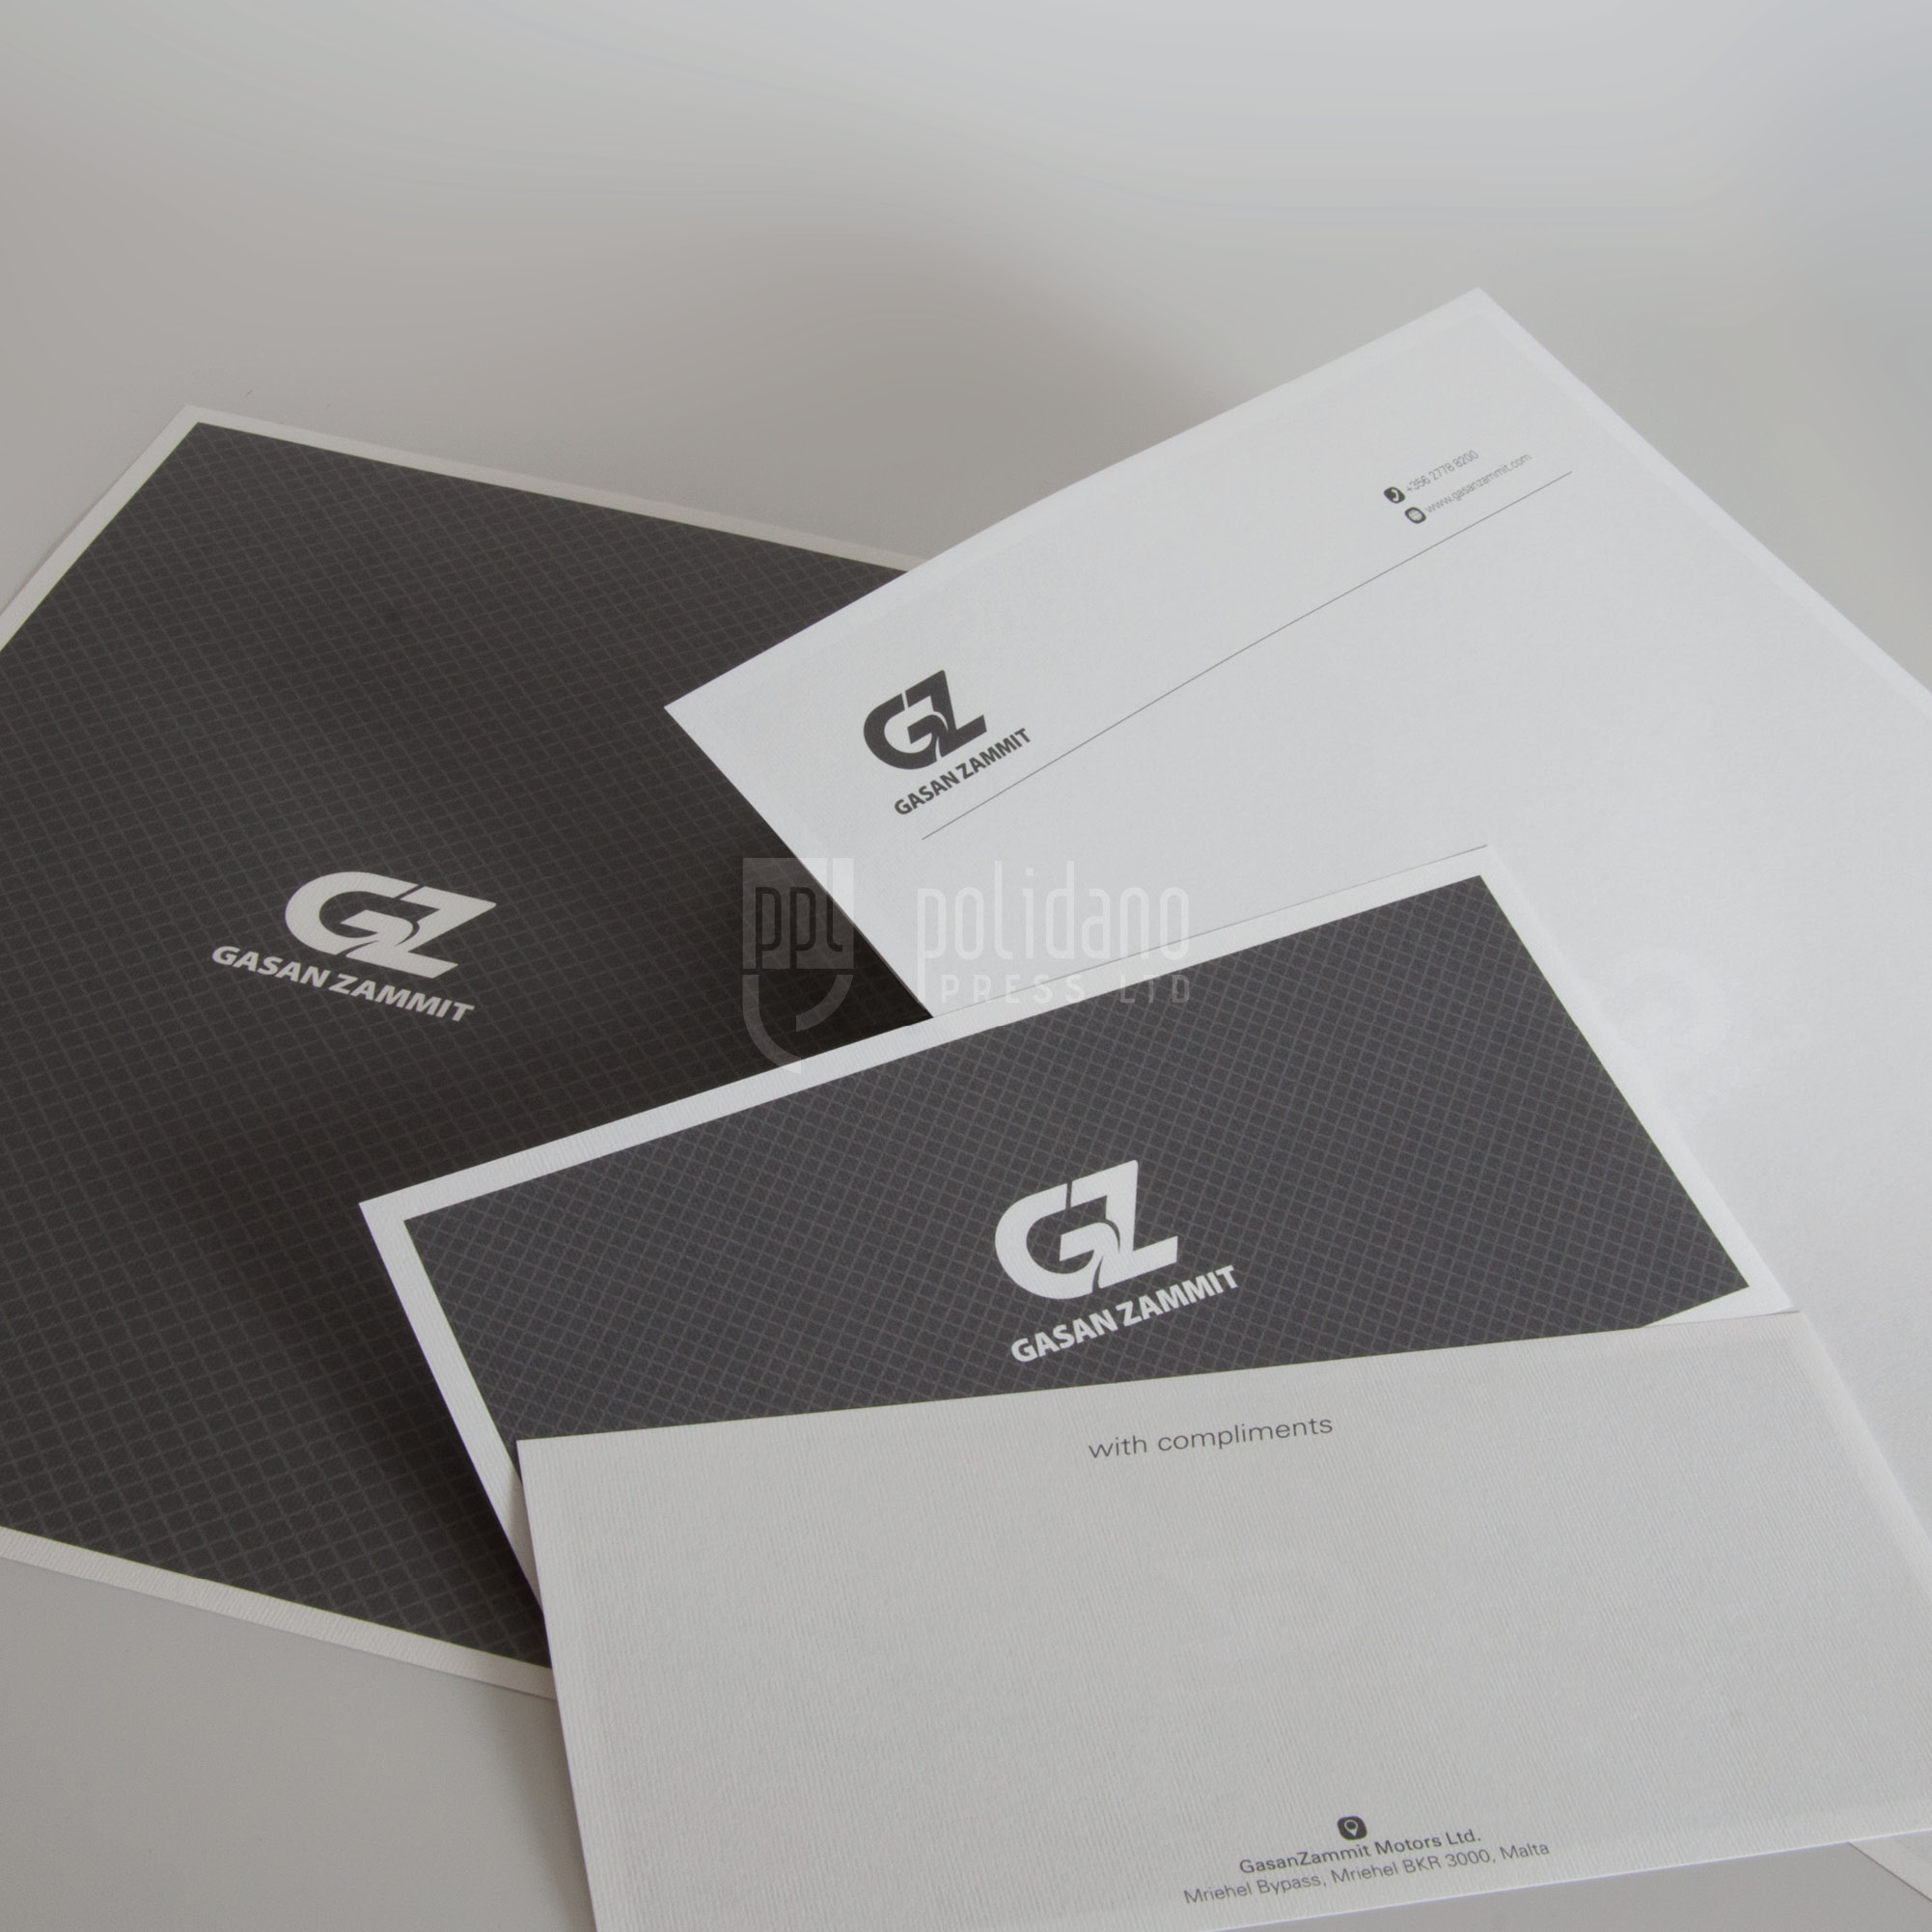 Gasan Zammit stationery